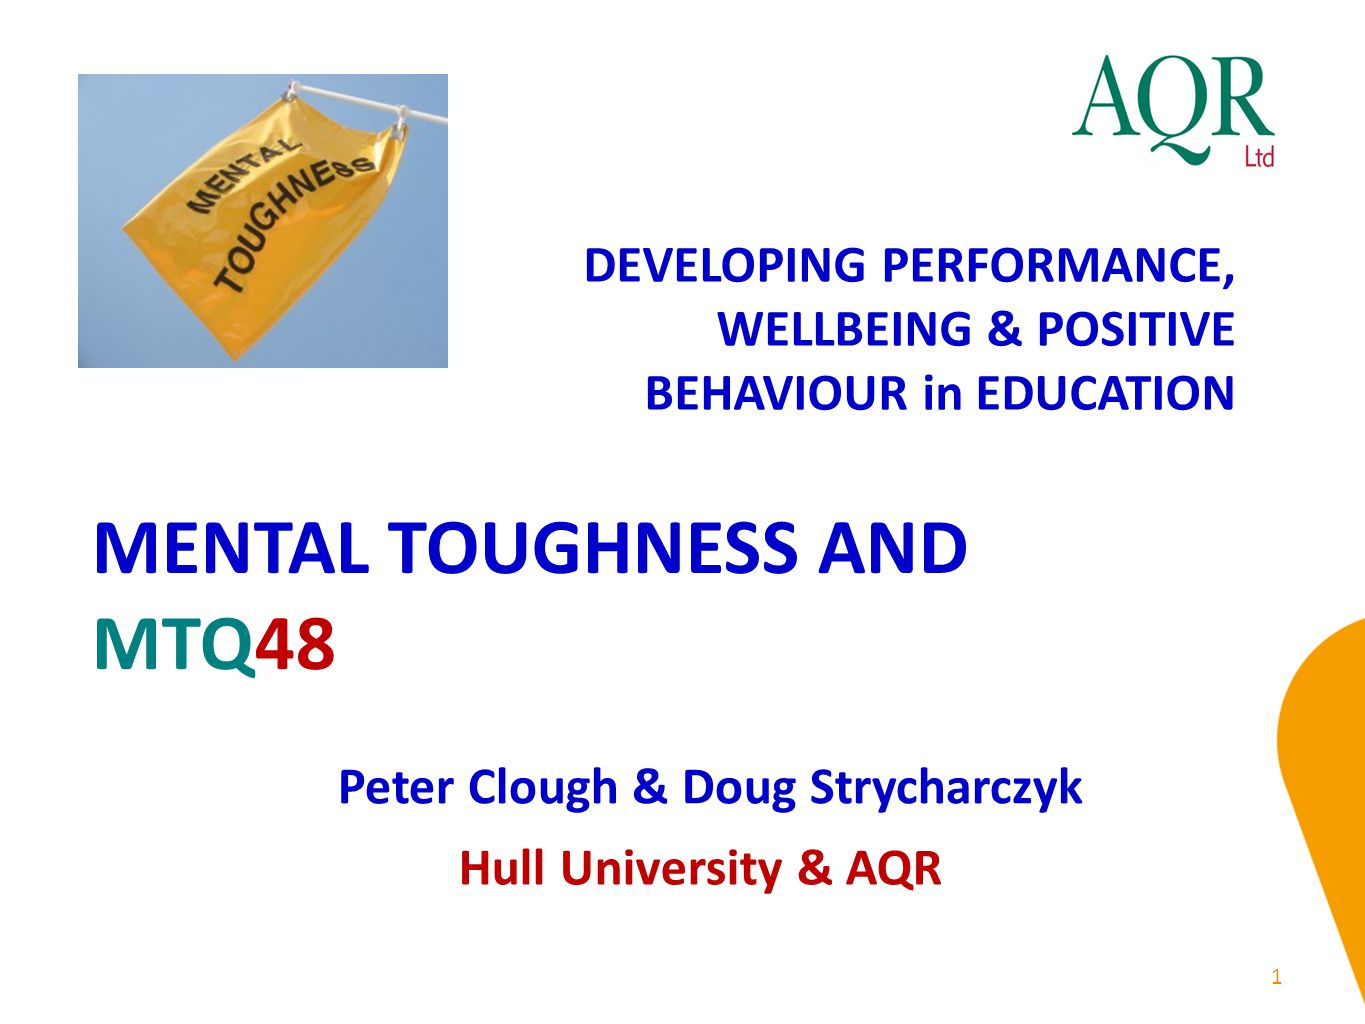 MENTAL TOUGHNESS AND MTQ48